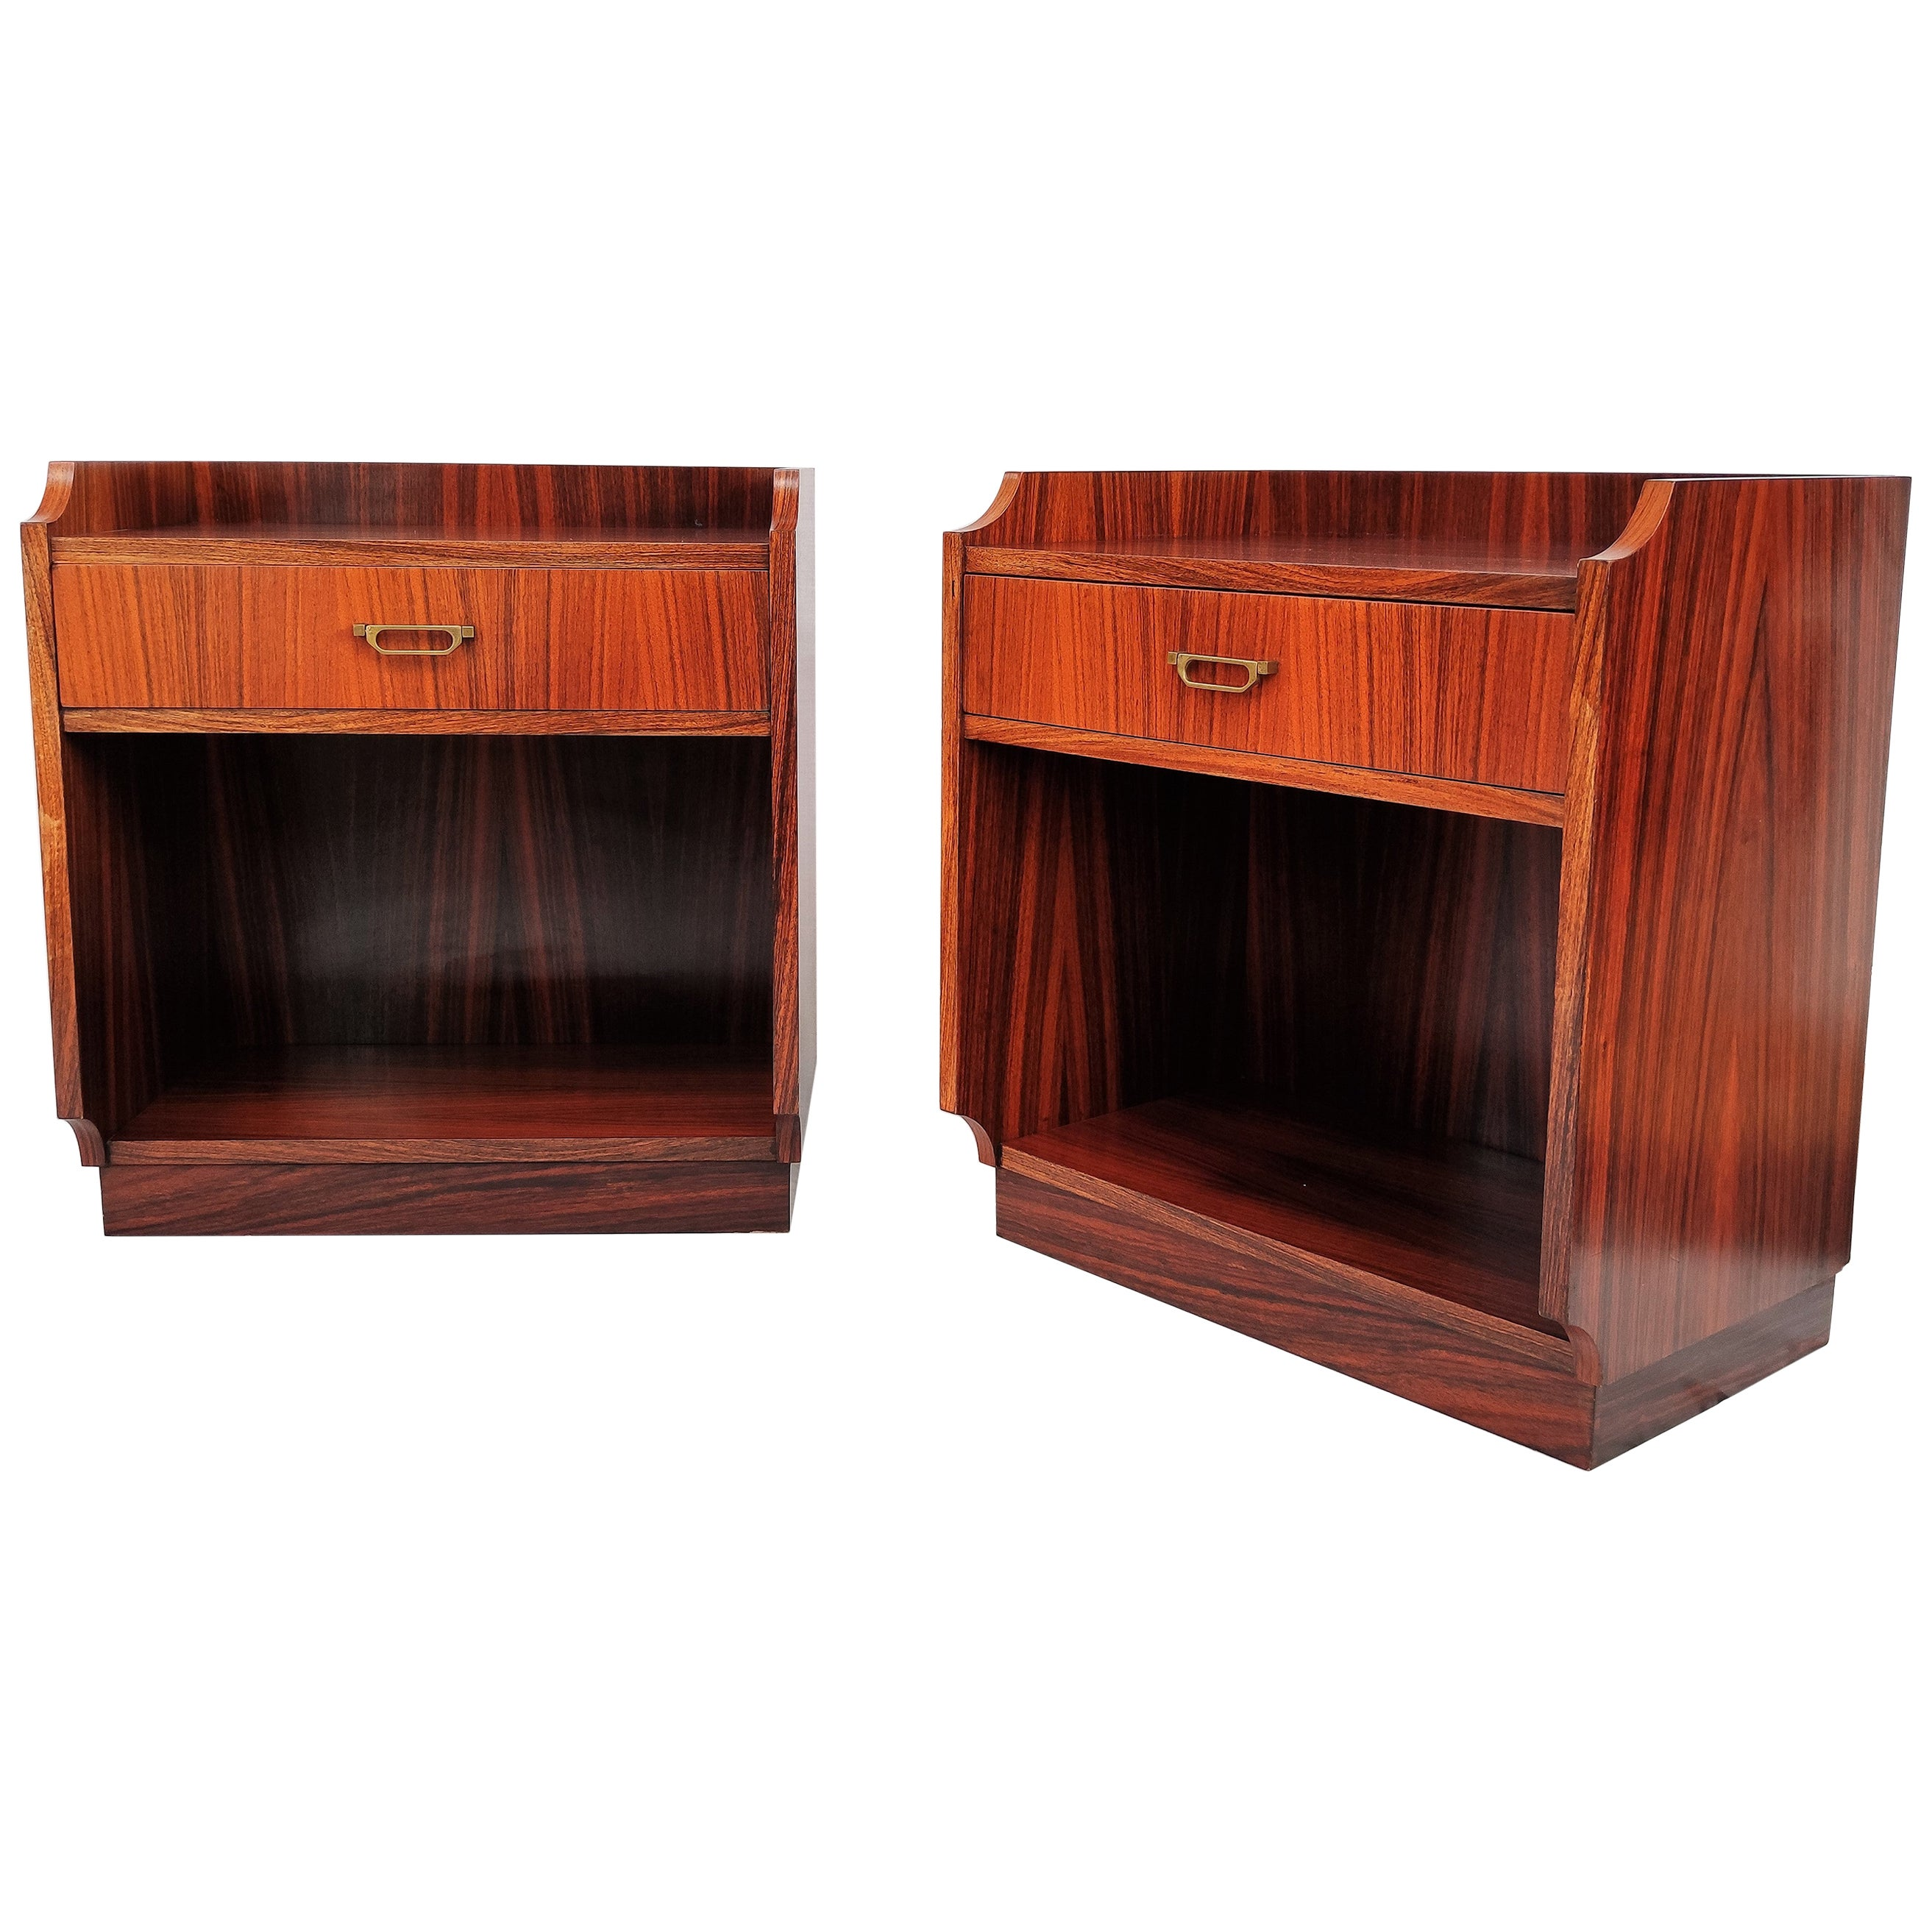 Pair of 1960s Italian Midcentury Nightstands Bed Side Tables in Wood and Brass